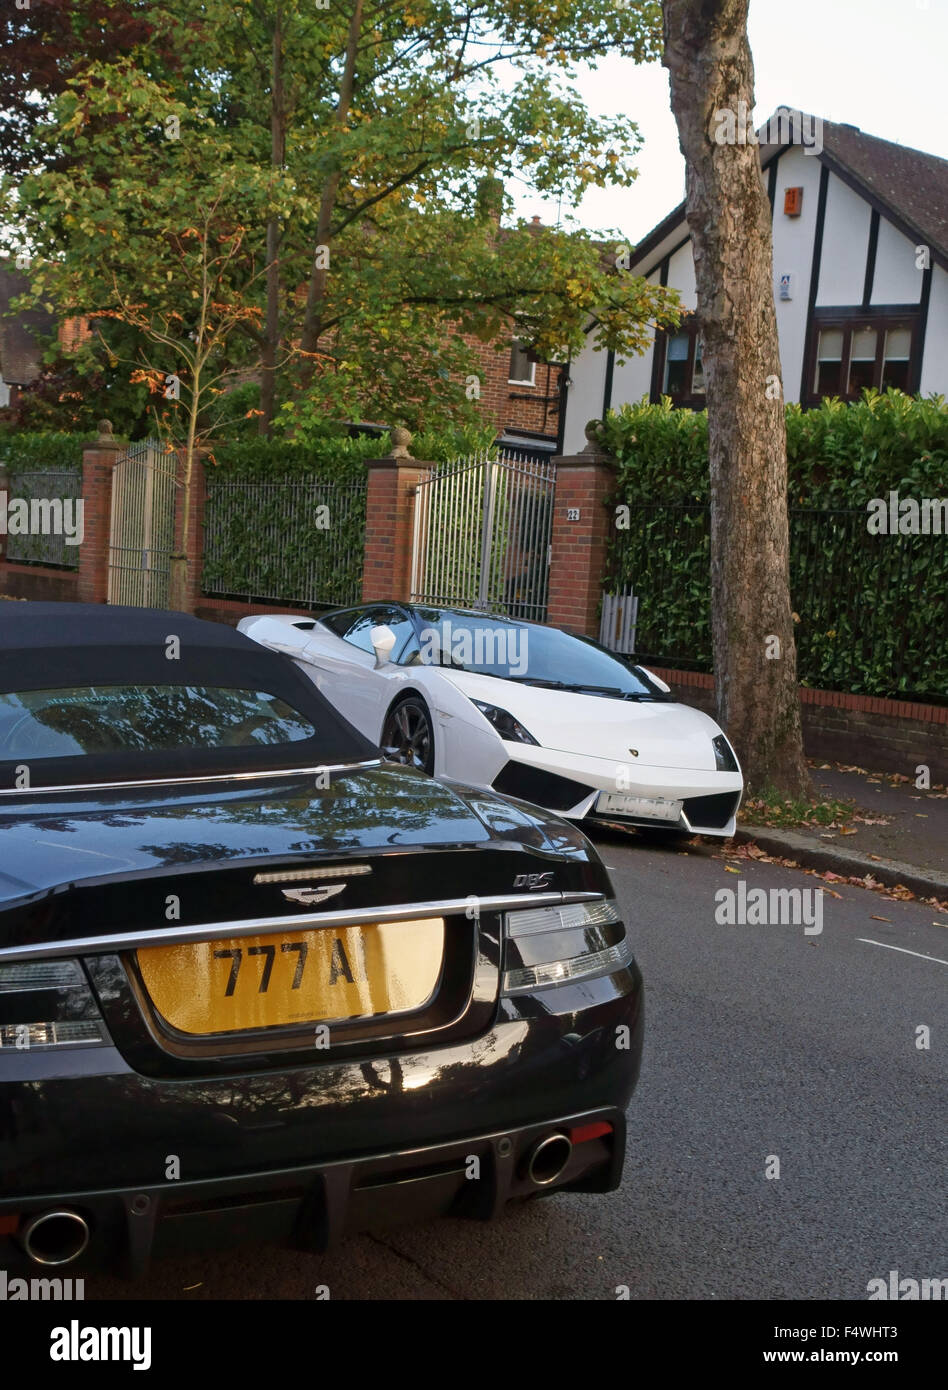 Luxury cars parked in street in wealthy North London neighbourhood - Stock Image